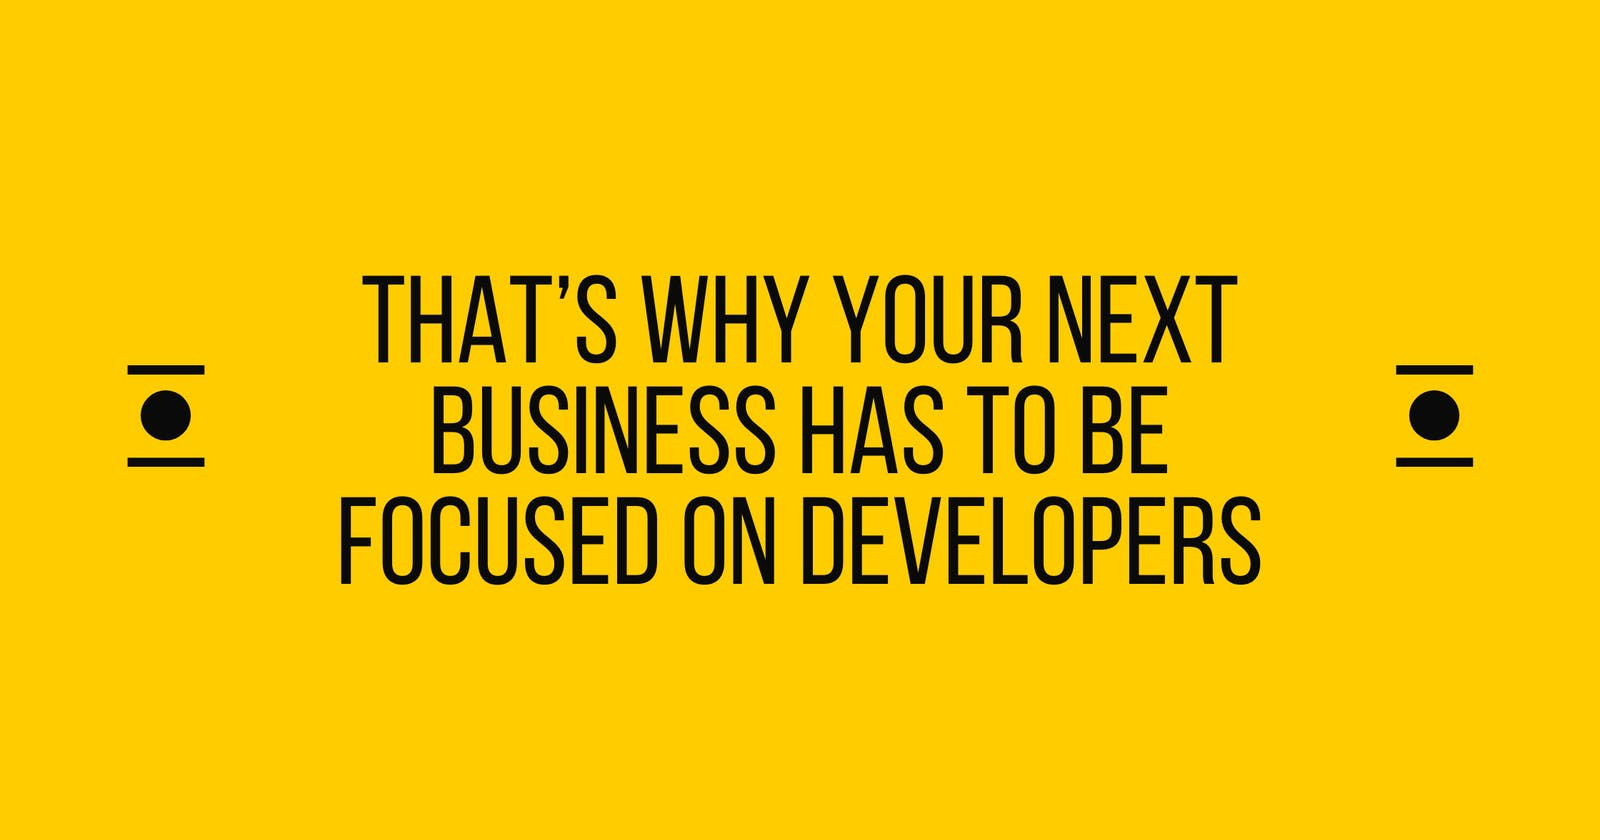 That's why your next business has to be focused on Developers